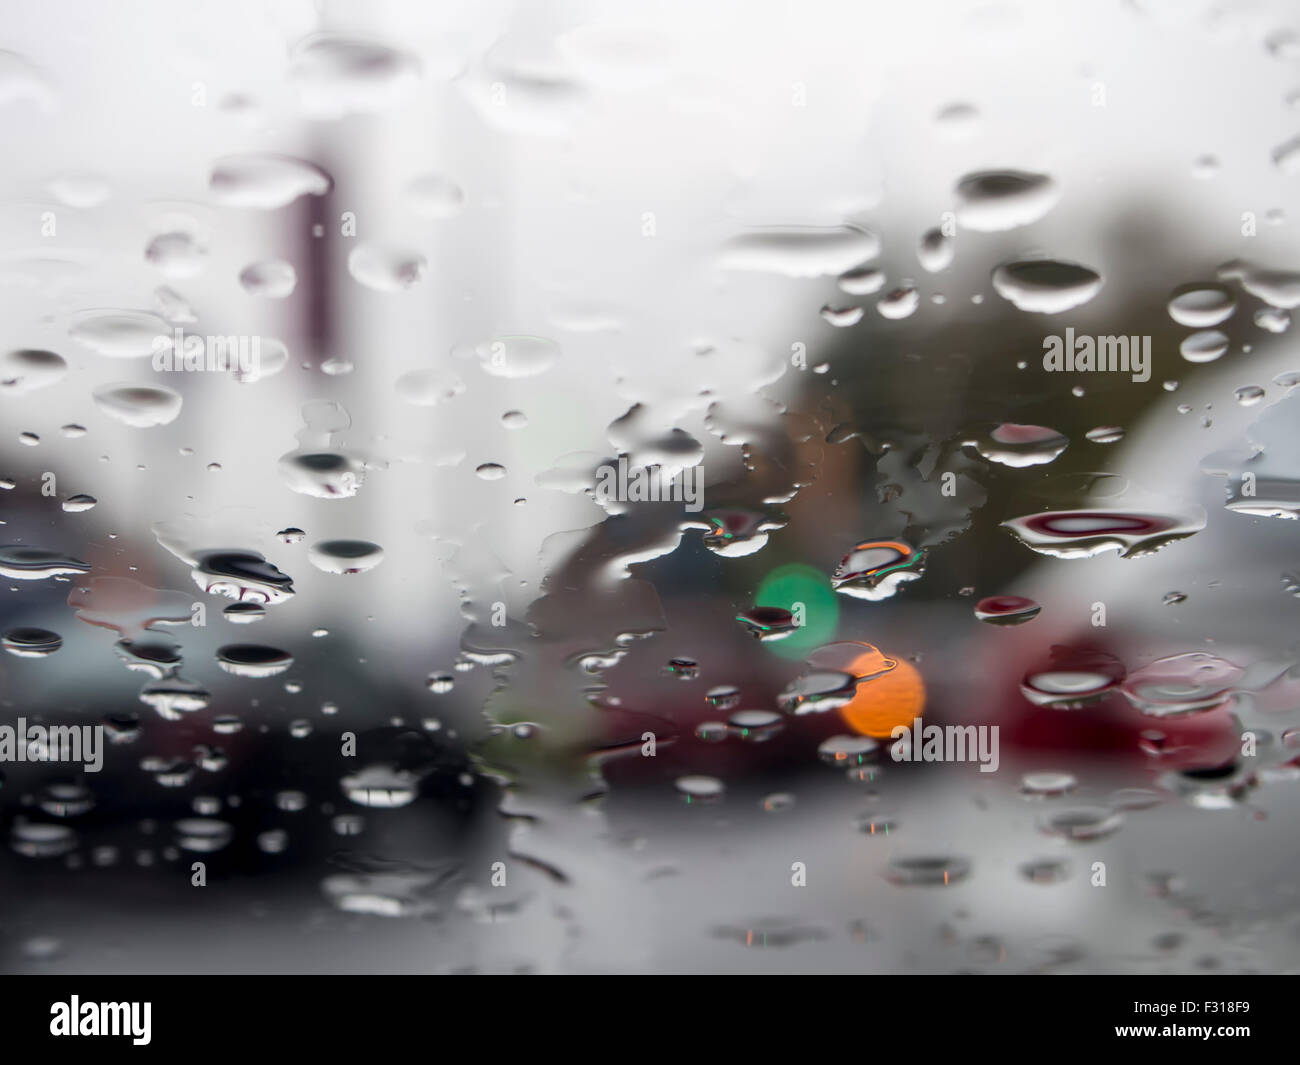 Water droplets on window of car - Stock Image